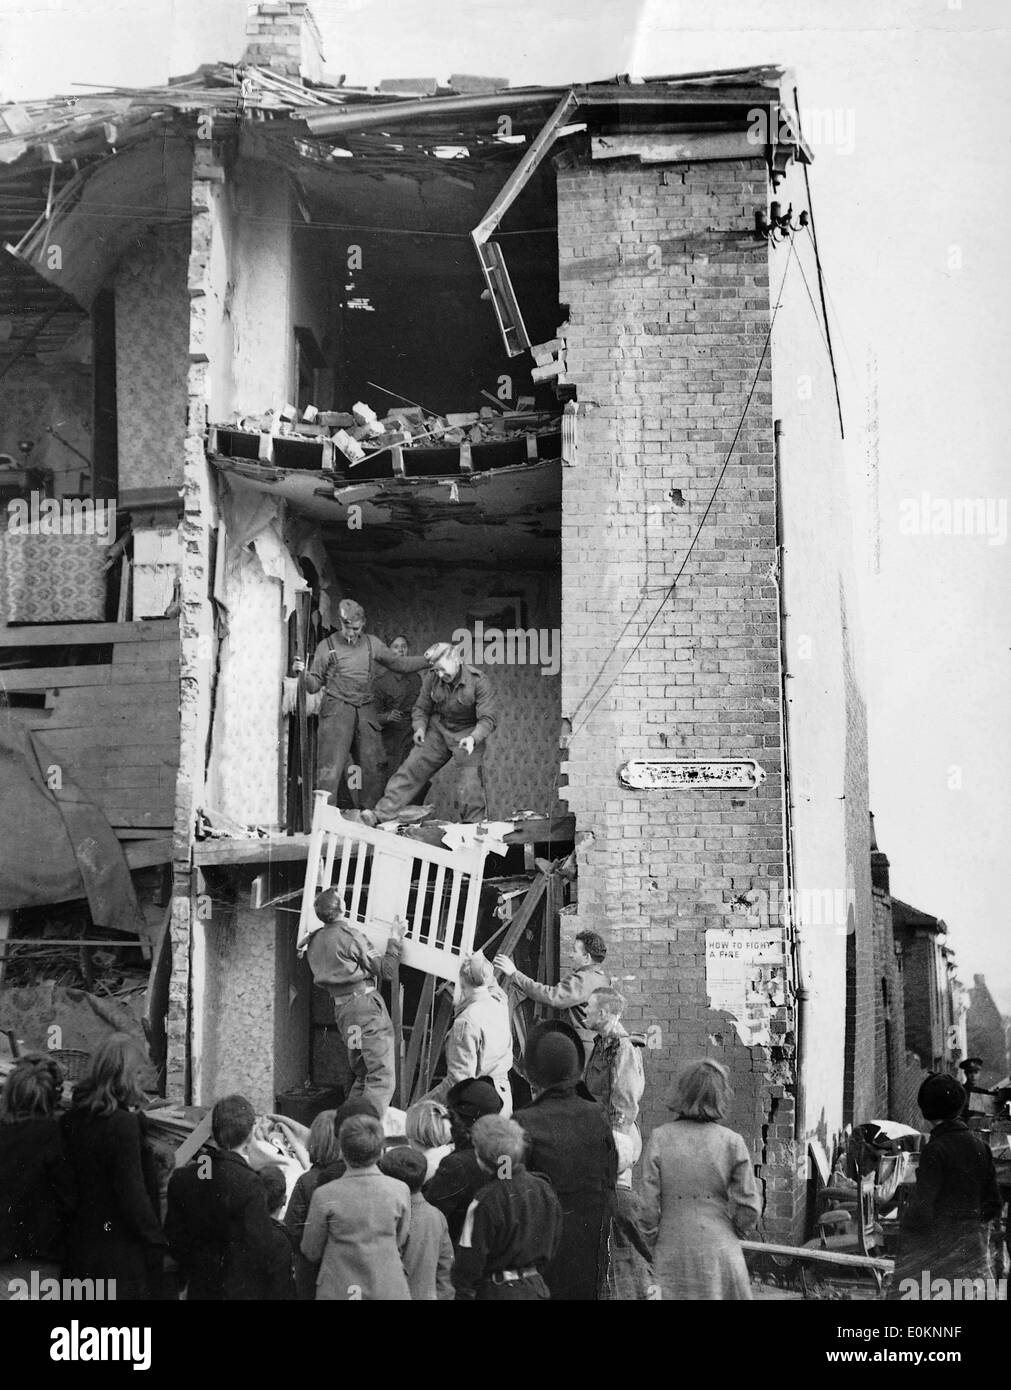 Wreckage in Birmingham after a war raid during The Blitz - Stock Image